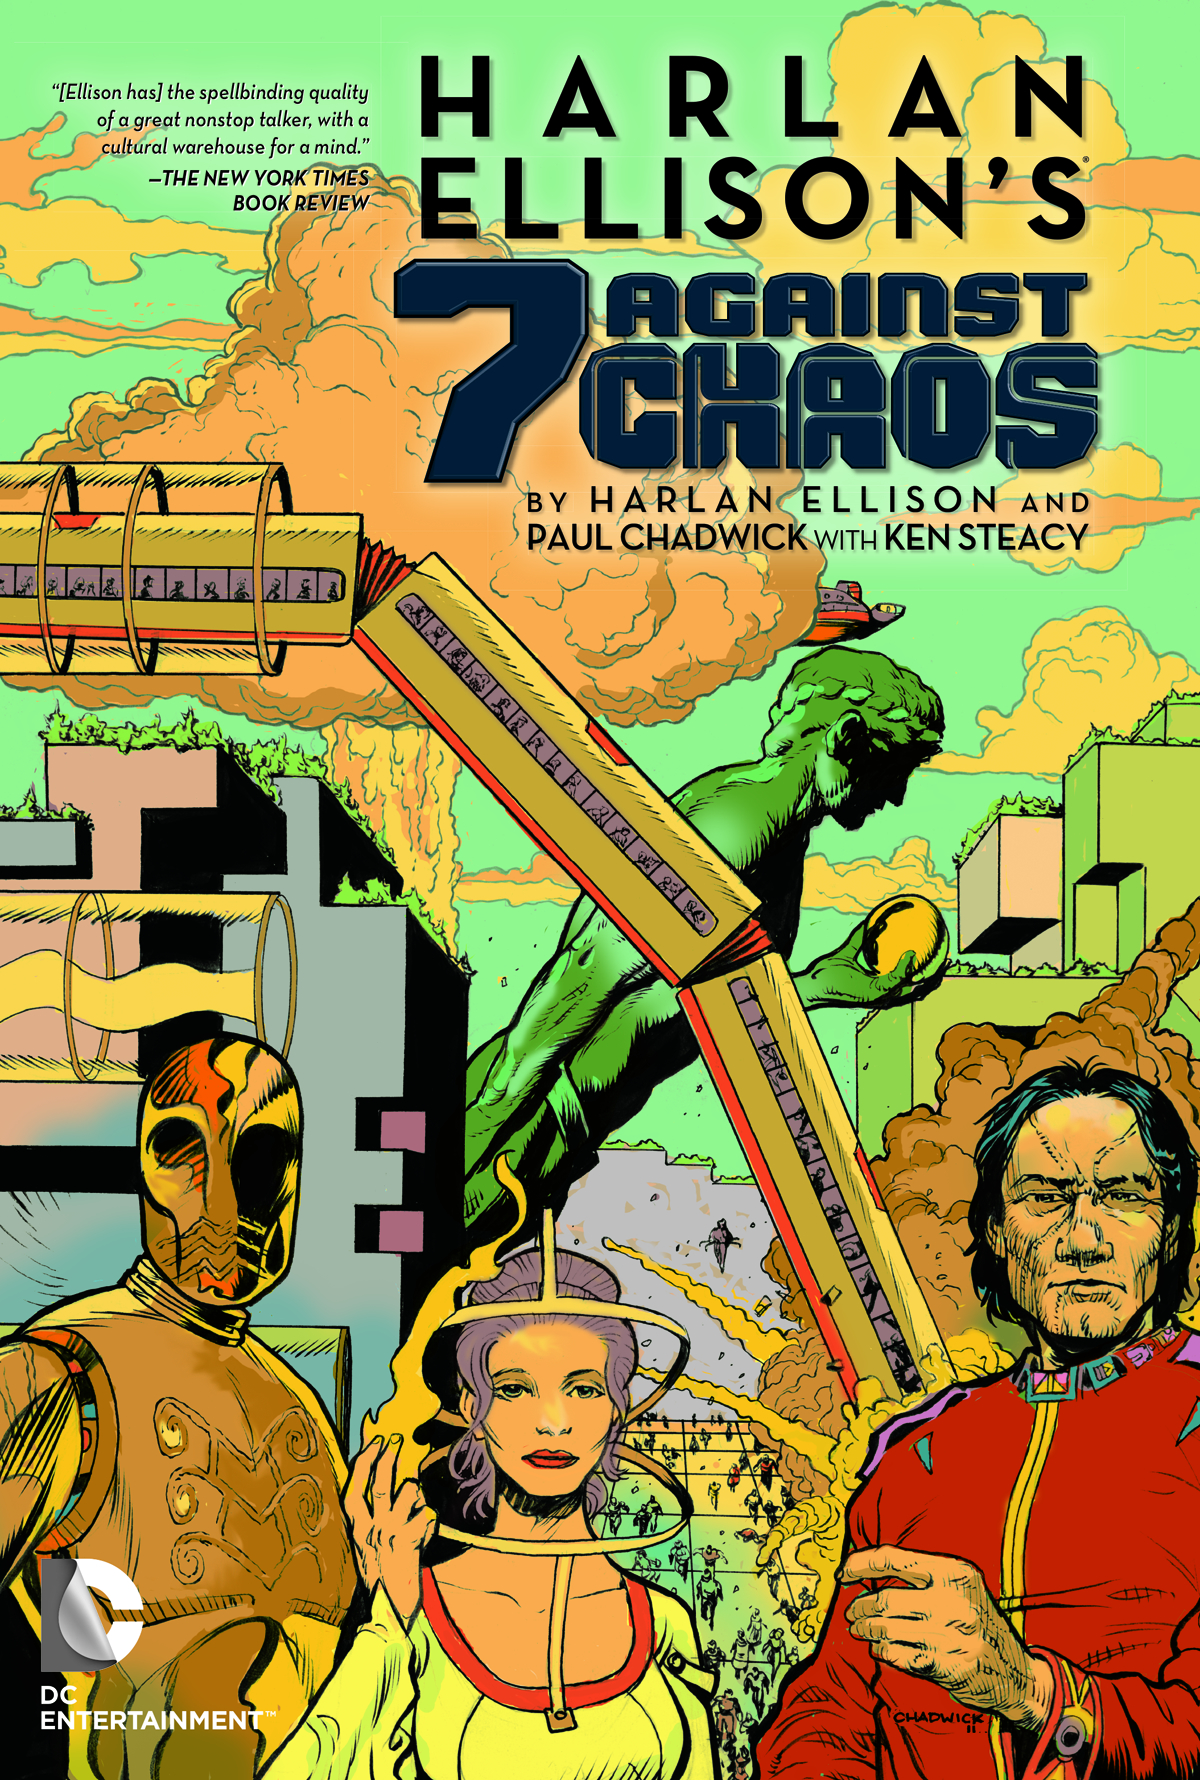 HARLAN ELLISONS 7 AGAINST CHAOS TP